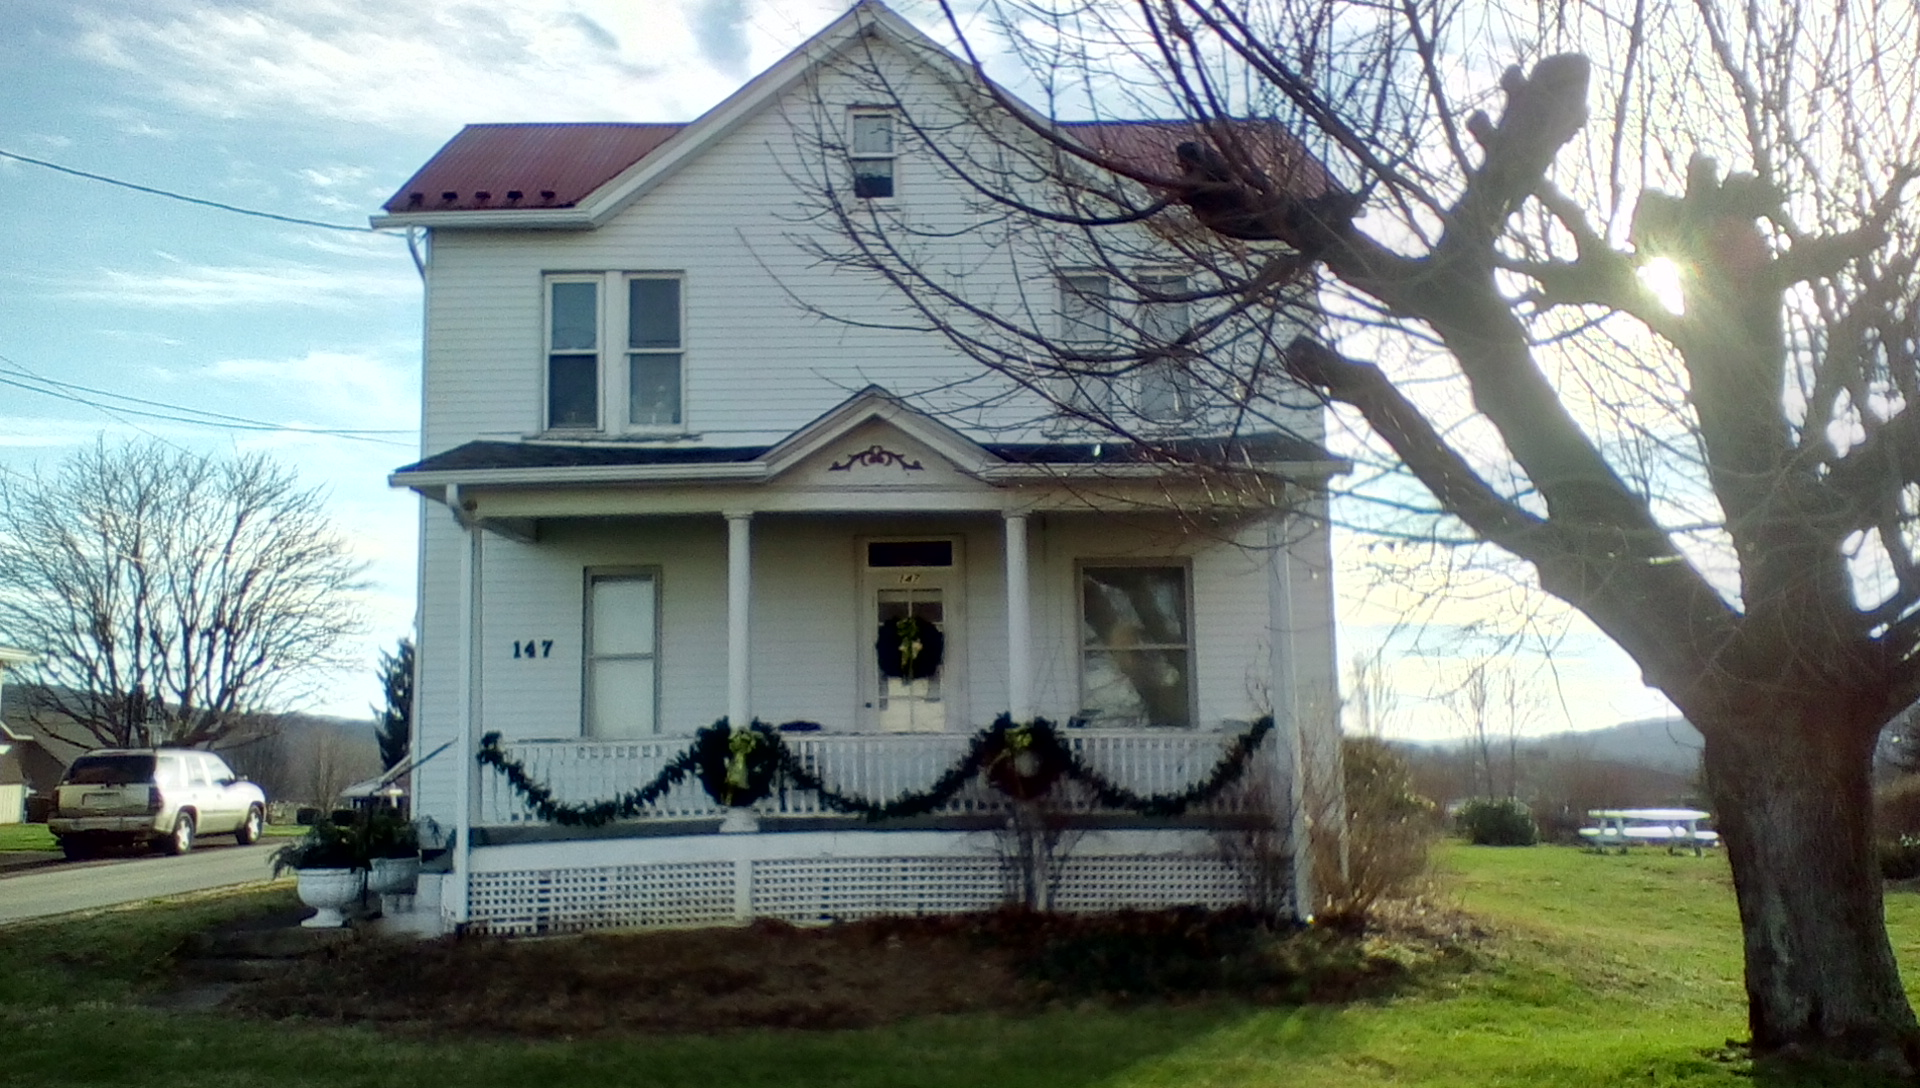 Krause house (2015) Salisbury, PA